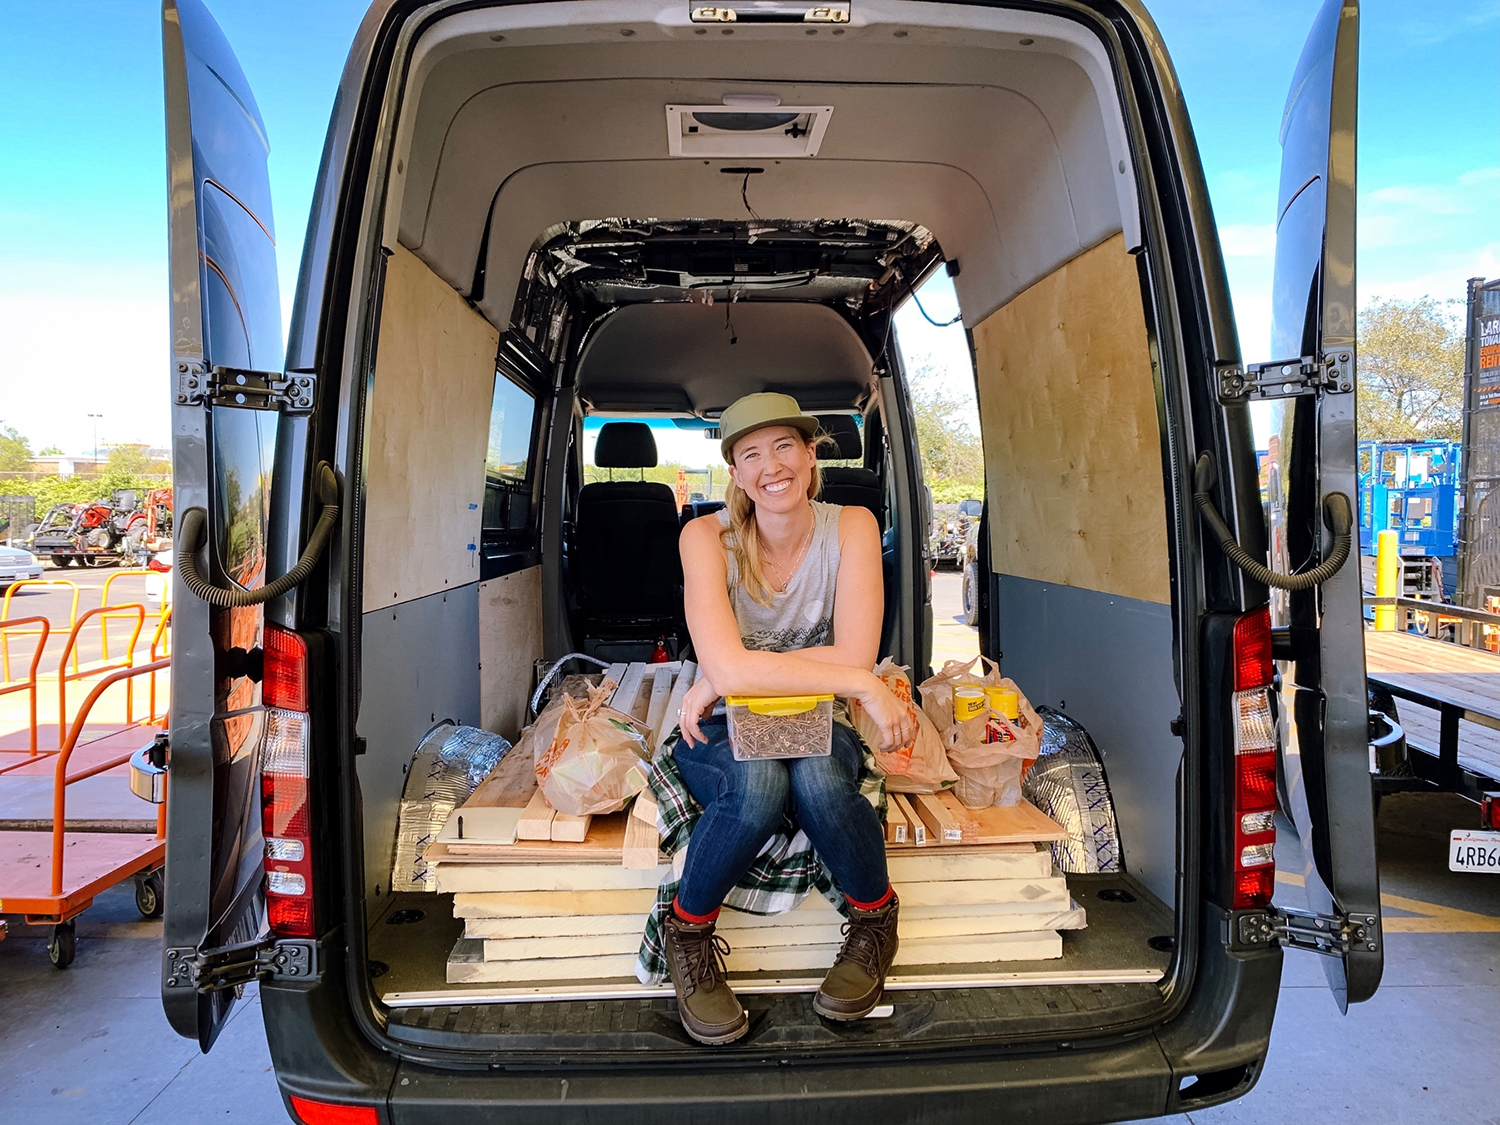 Megan Cable continues her dreams of road travel after leaving the first van she traveled in